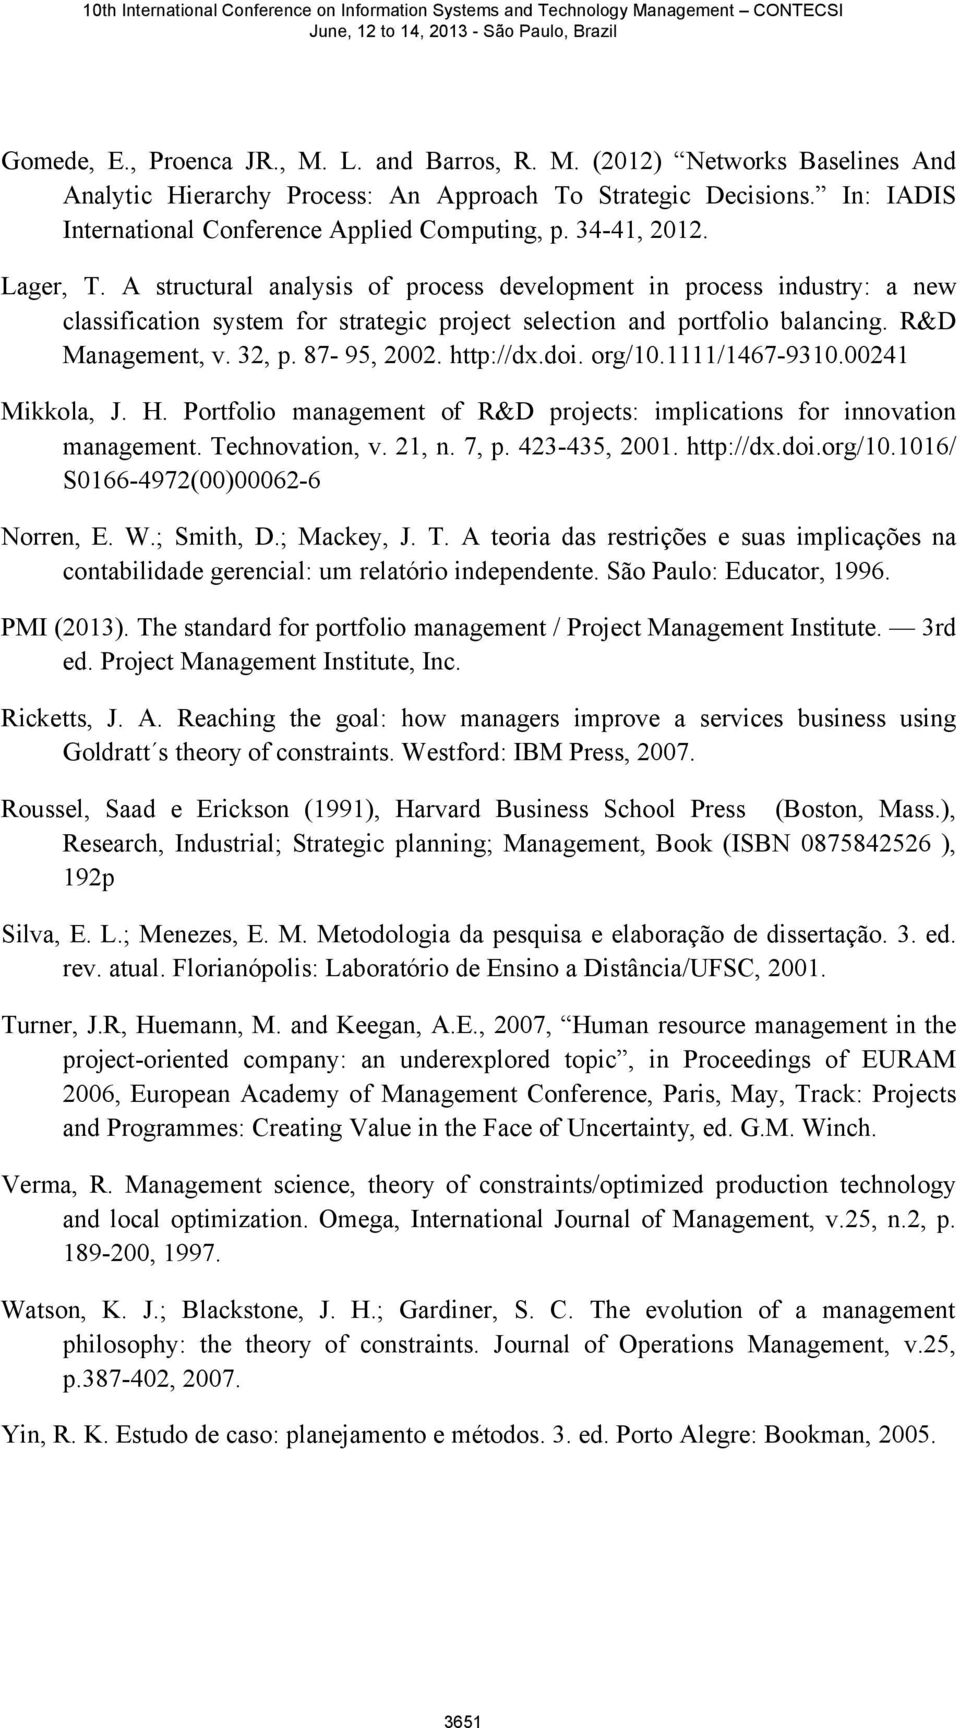 87-95, 2002. http://dx.doi. org/10.1111/1467-9310.00241 Mikkola, J. H. Portfolio management of R&D projects: implications for innovation management. Technovation, v. 21, n. 7, p. 423-435, 2001.